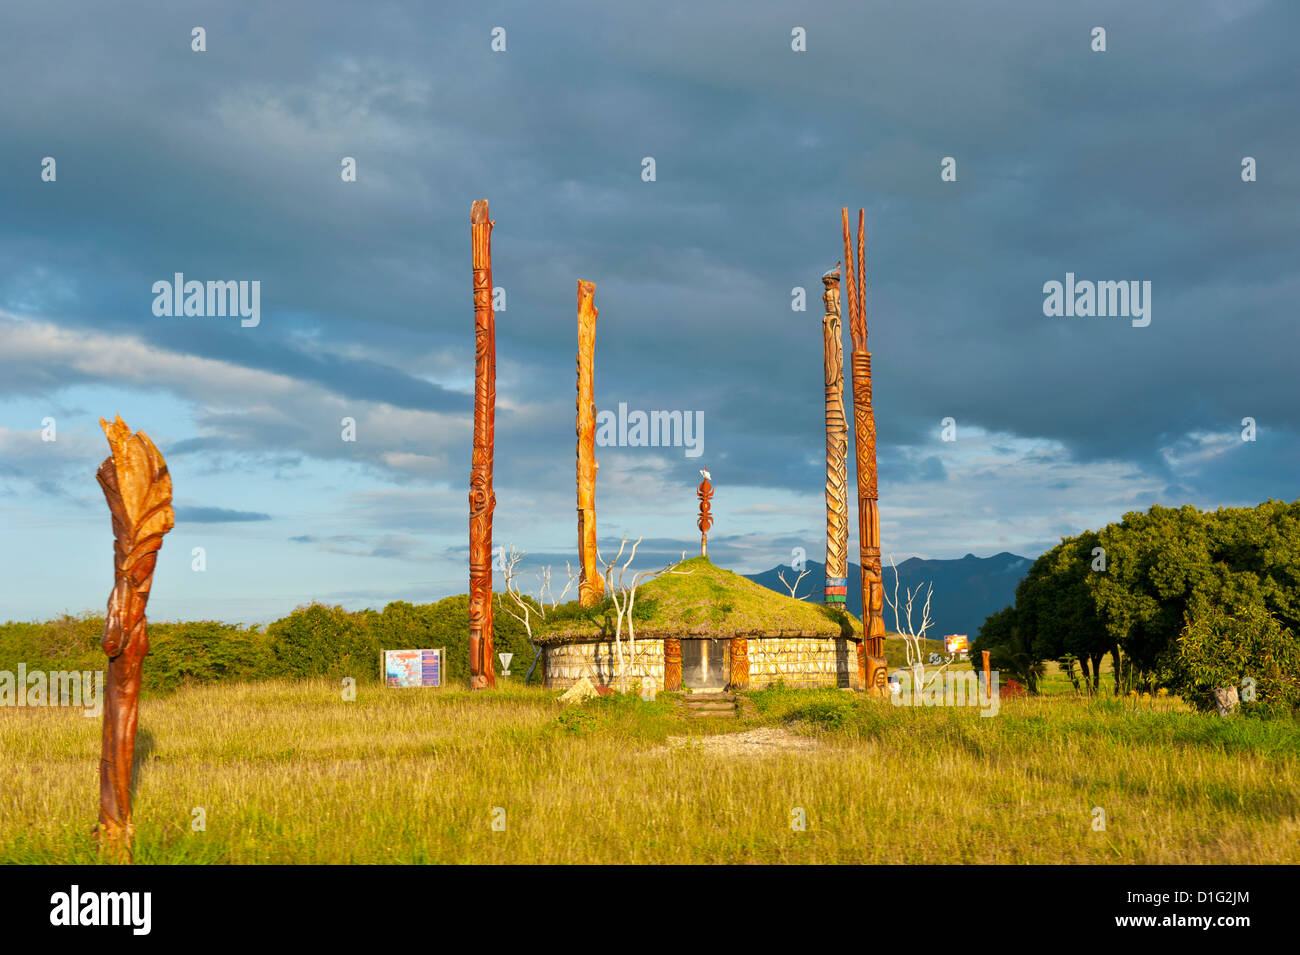 Traditional hut with poles on the west coast of Grand Terre, New Caledonia, Melanesia, South Pacific, Pacific - Stock Image